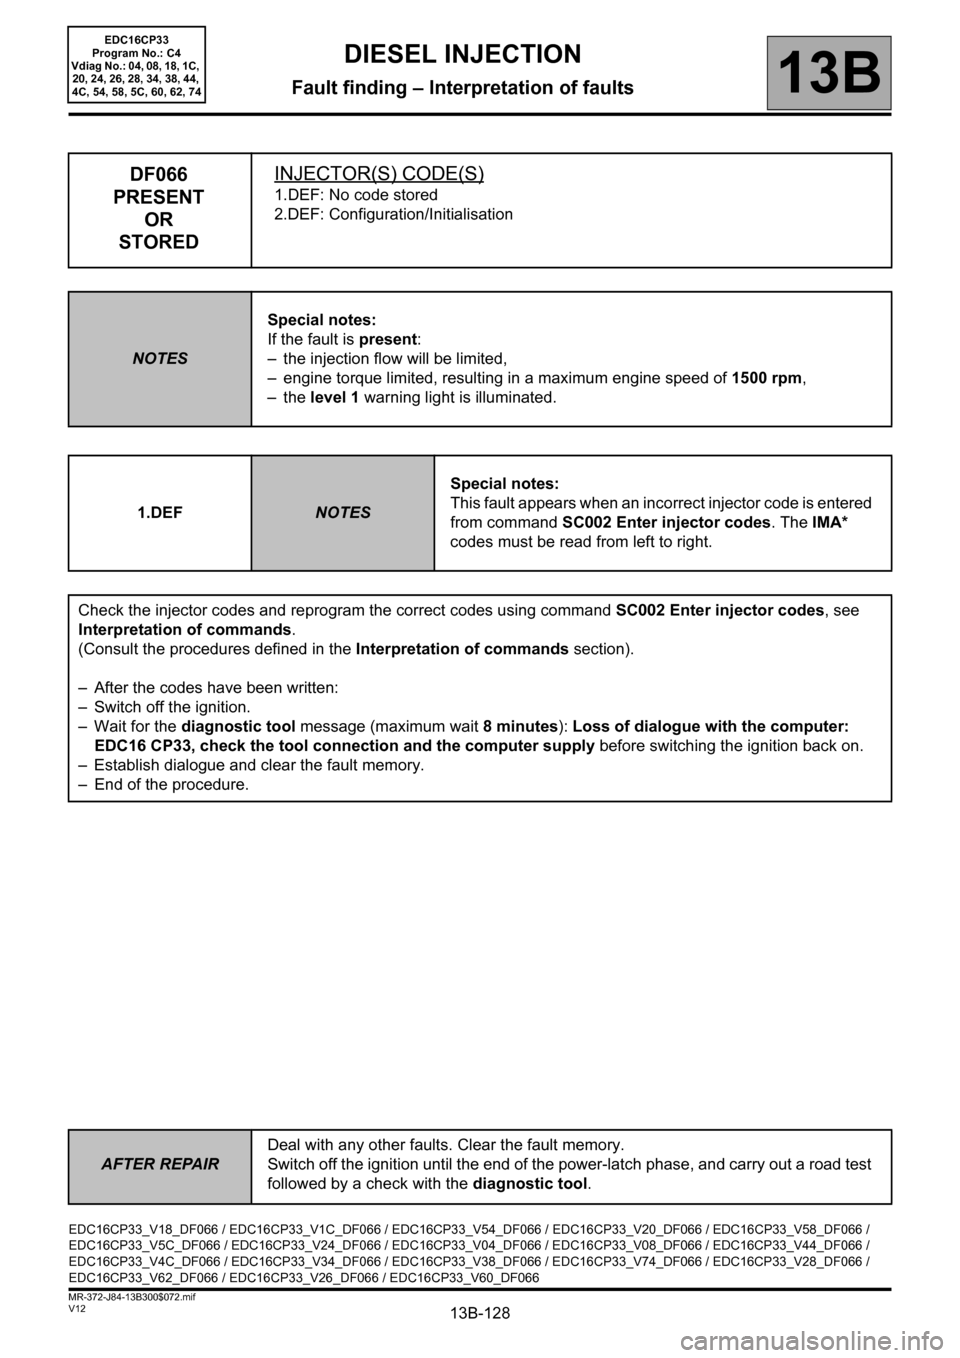 RENAULT SCENIC 2012 J95 / 3.G Engine And Peripherals EDC16CP33 Workshop Manual, Page 128